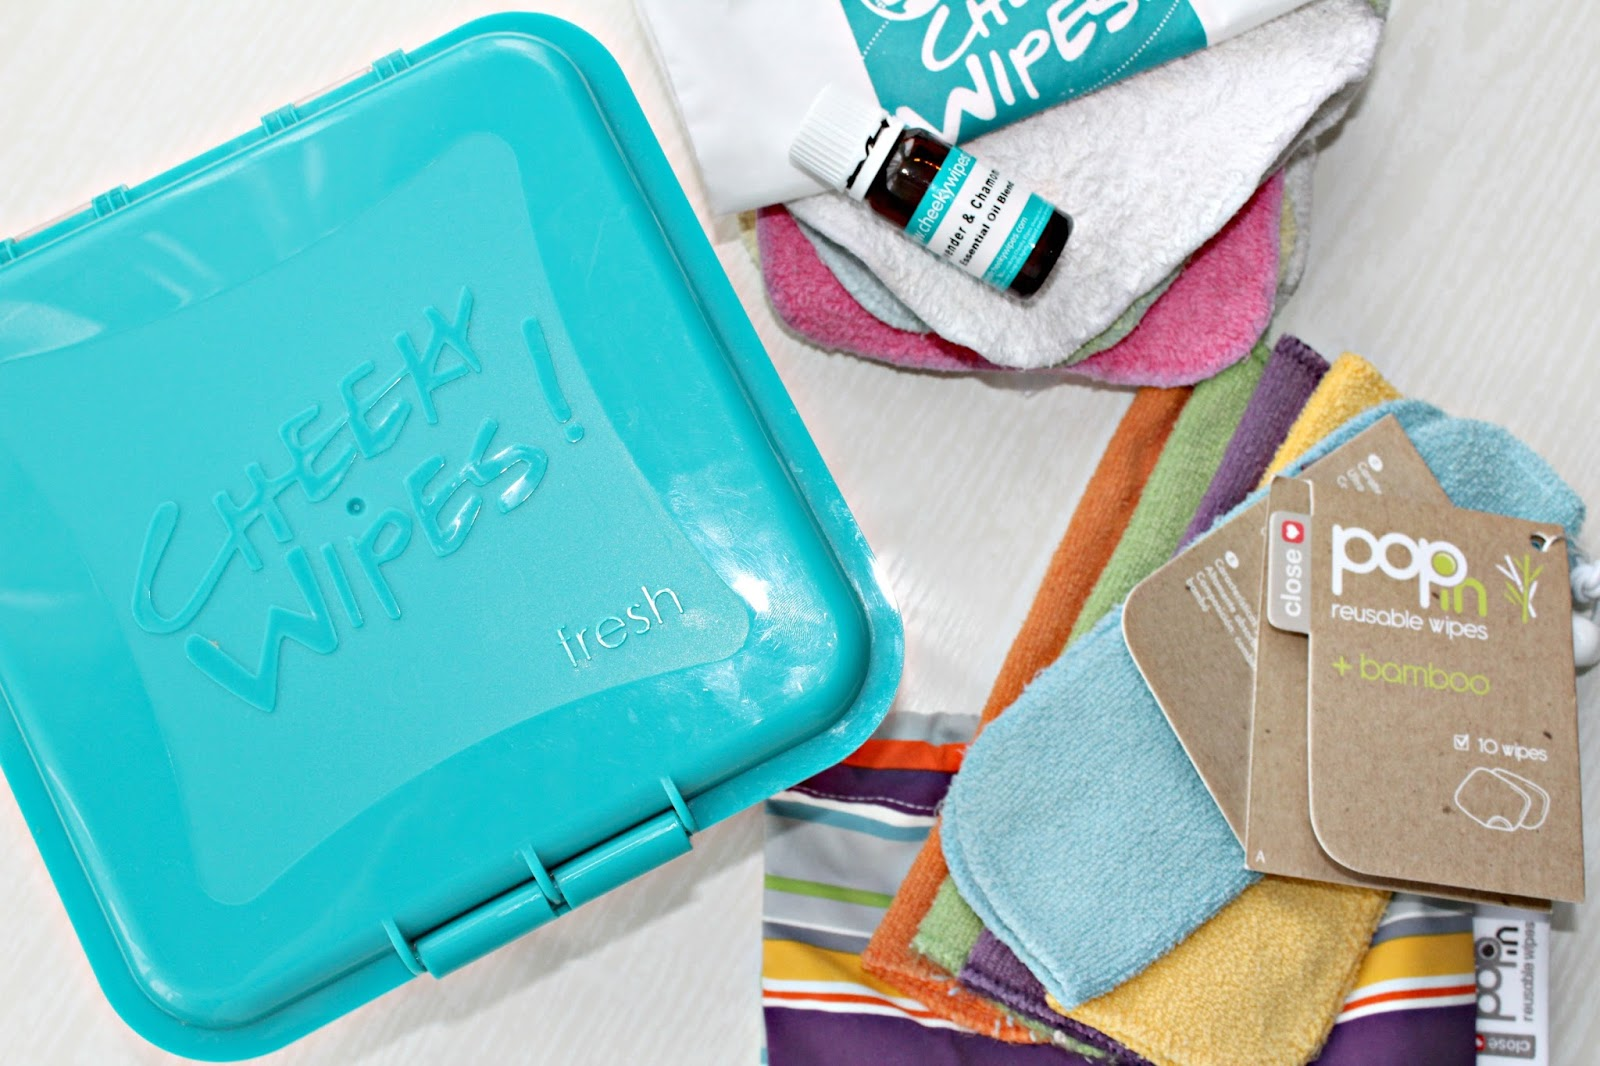 Greener alternatives to baby wipes: Close parent and Cheeky wipes (reusable cloth wipes) review